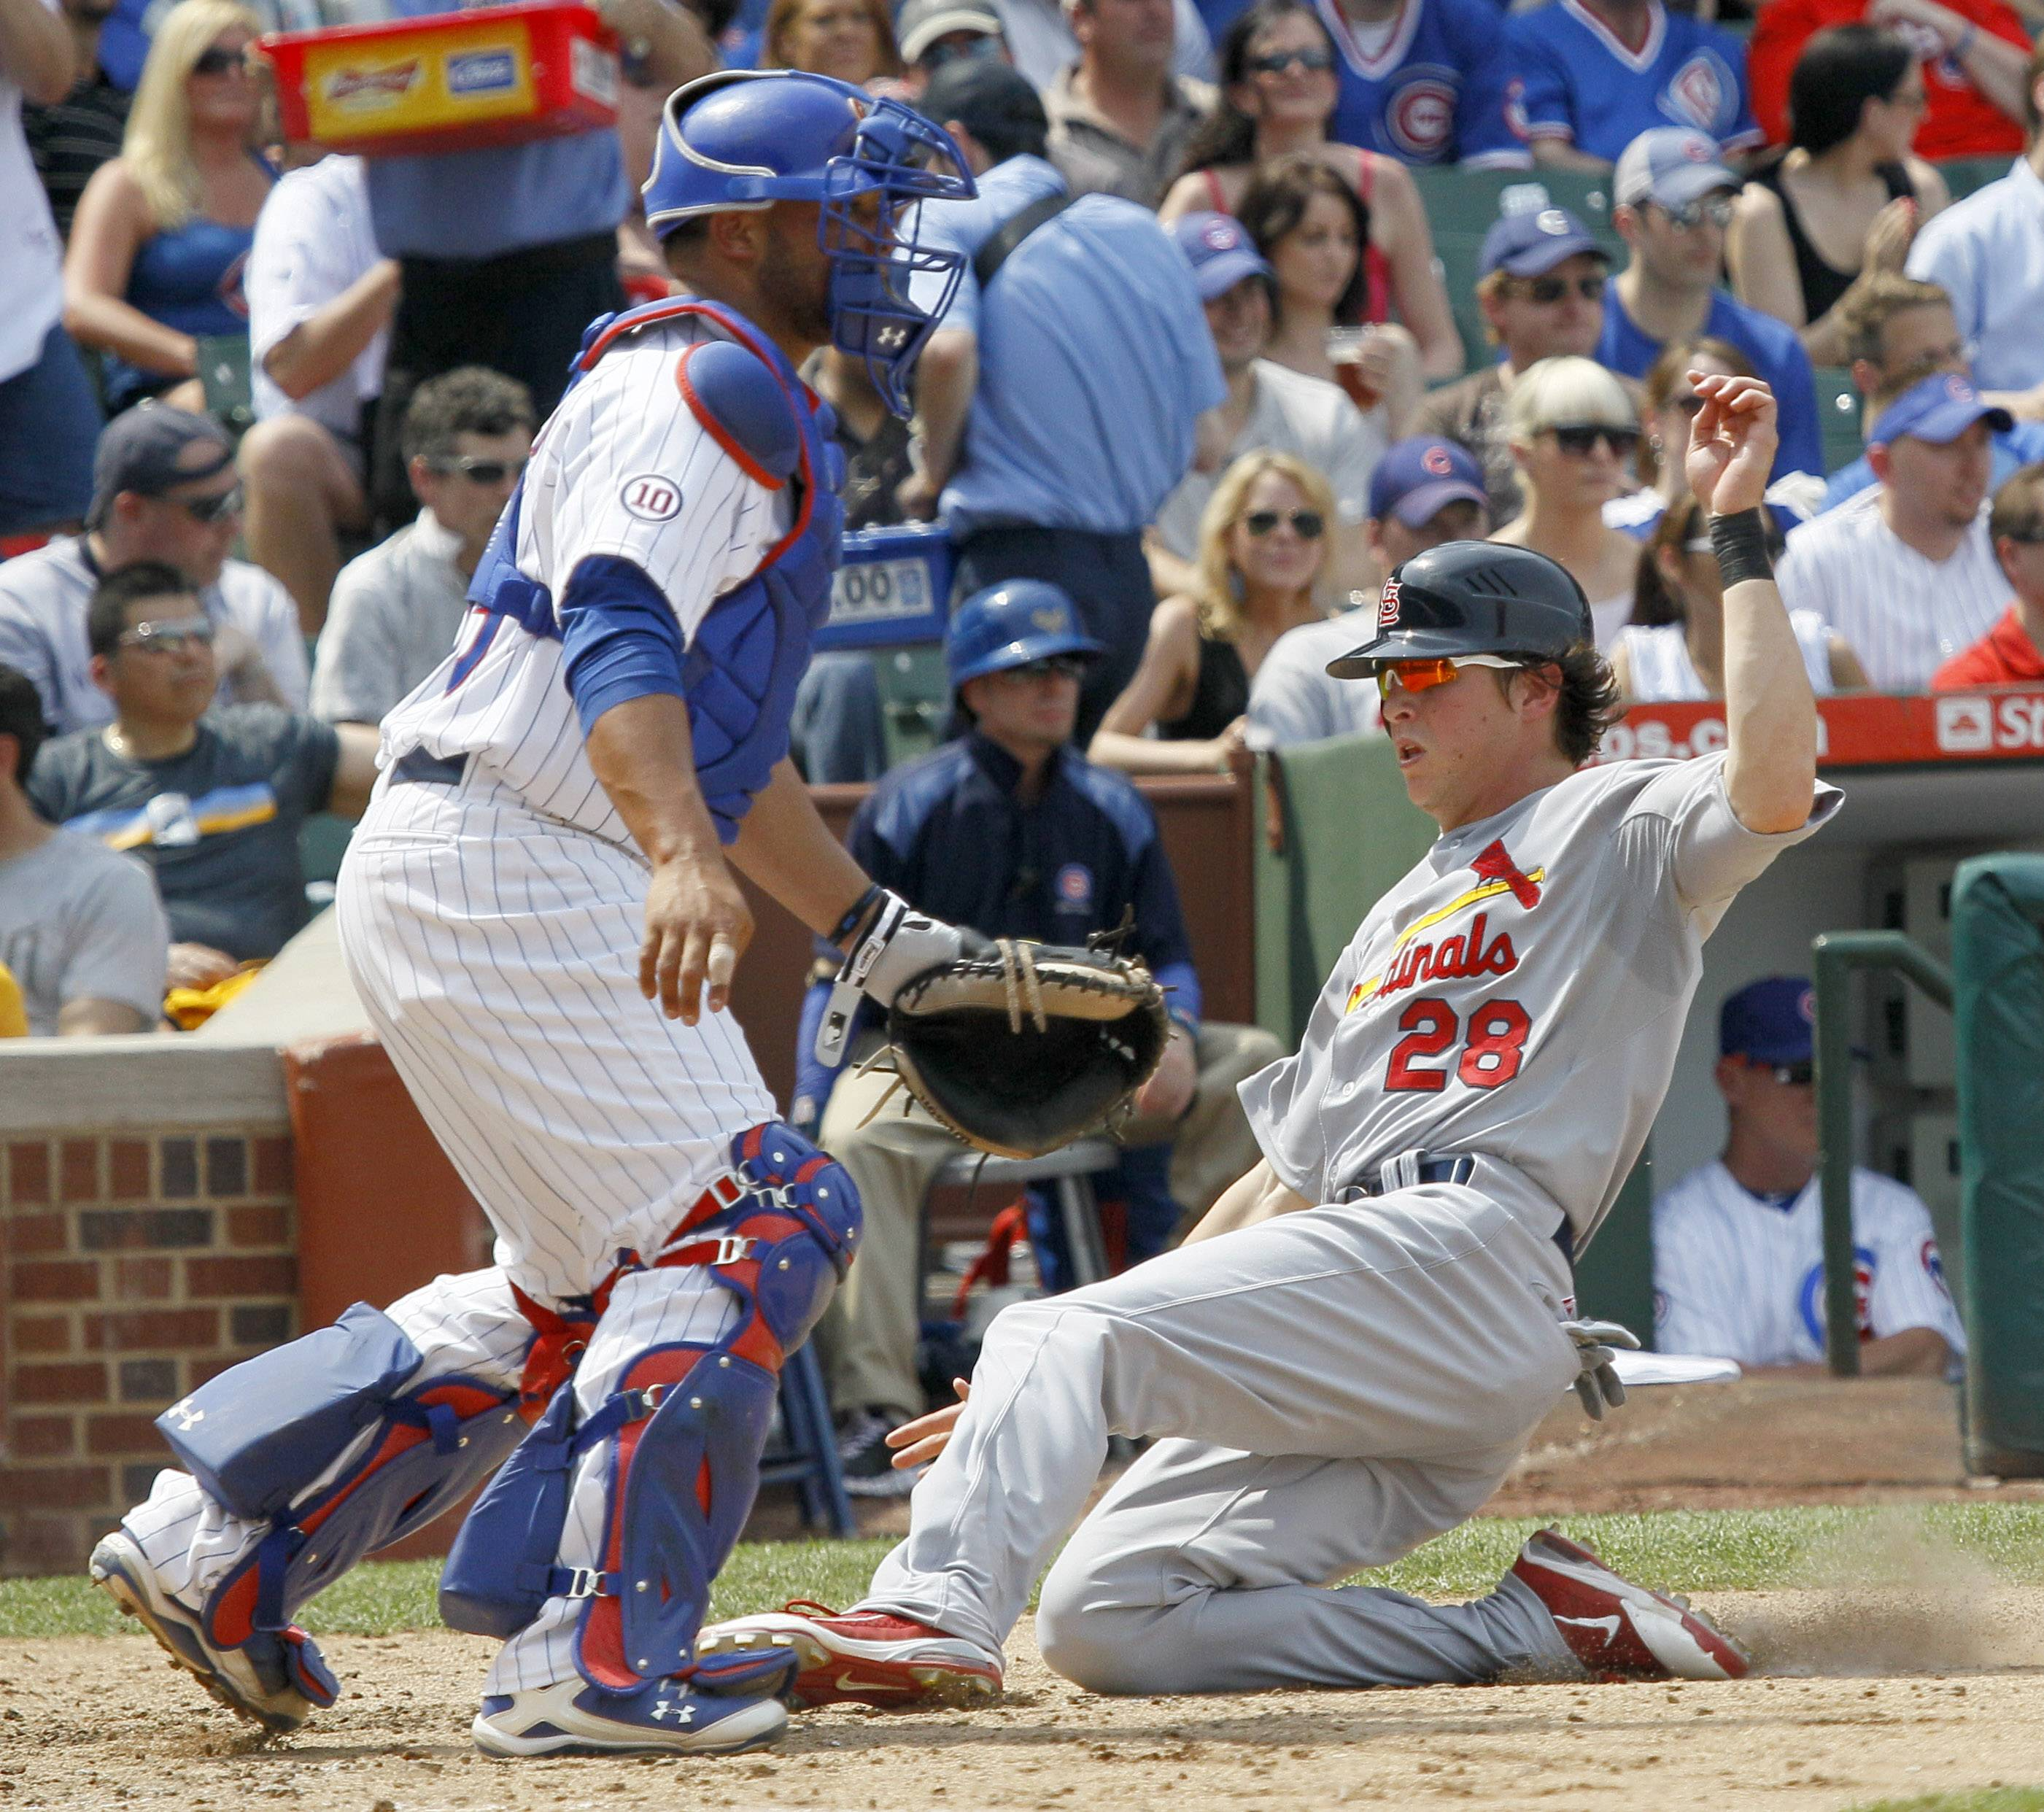 Colby Rasmus scores past Cubs catcher Welington Castillo off an RBI single by Yadier Molina during the fifth inning Thursday.